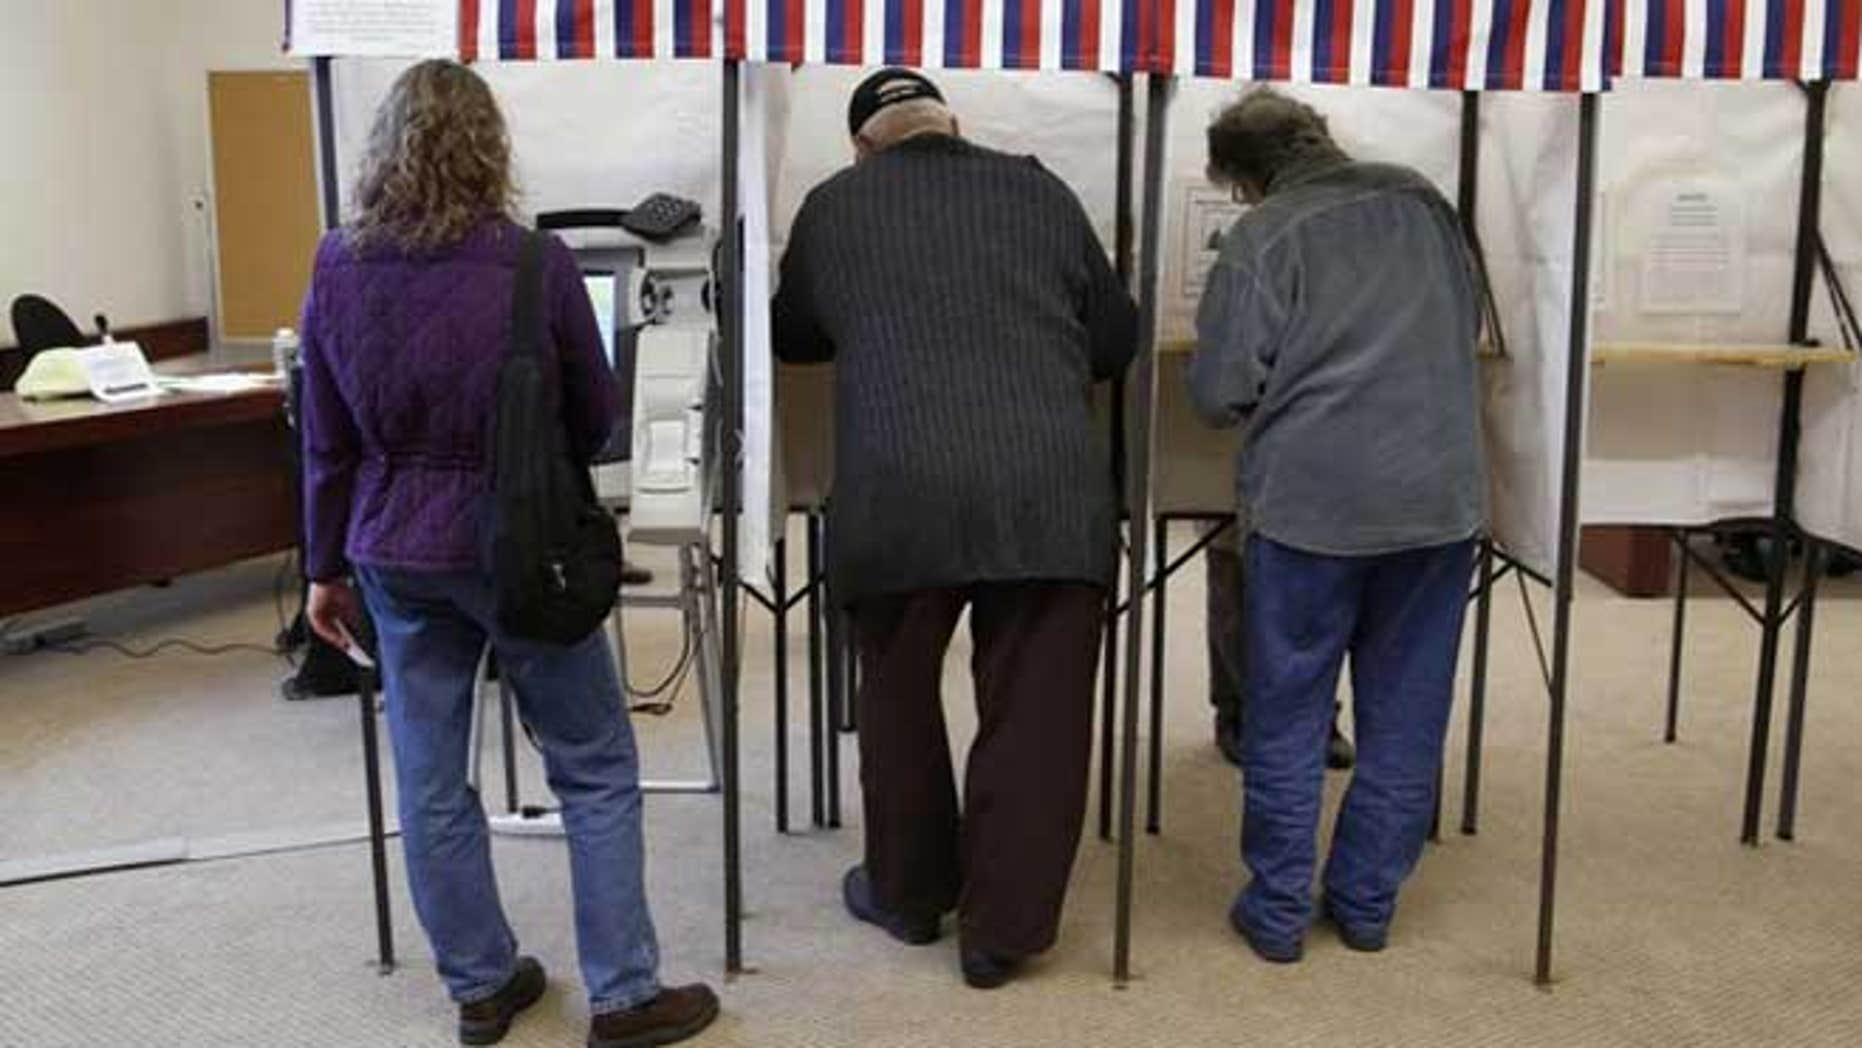 April 3, 2012: Voters take to the polls in Fredonia, Wisconsin.